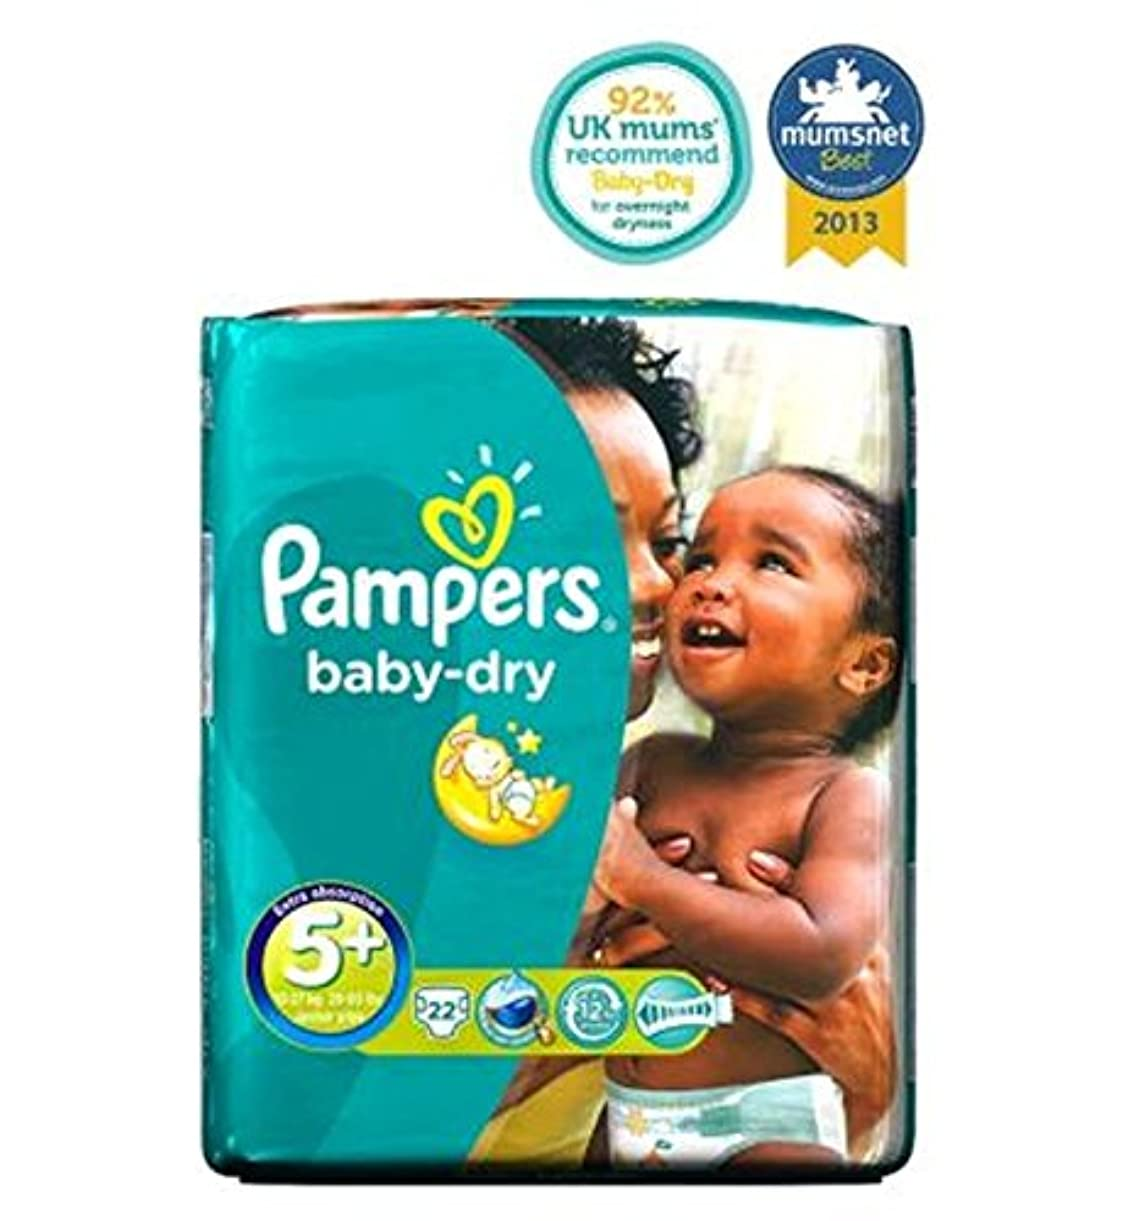 Pampers Baby-Dry Nappies Size 5+ Carry Packs - 22 Nappies - パンパースベビードライおむつサイズ5+パックを運ぶ - 22おむつ (Pampers) [並行輸入品]